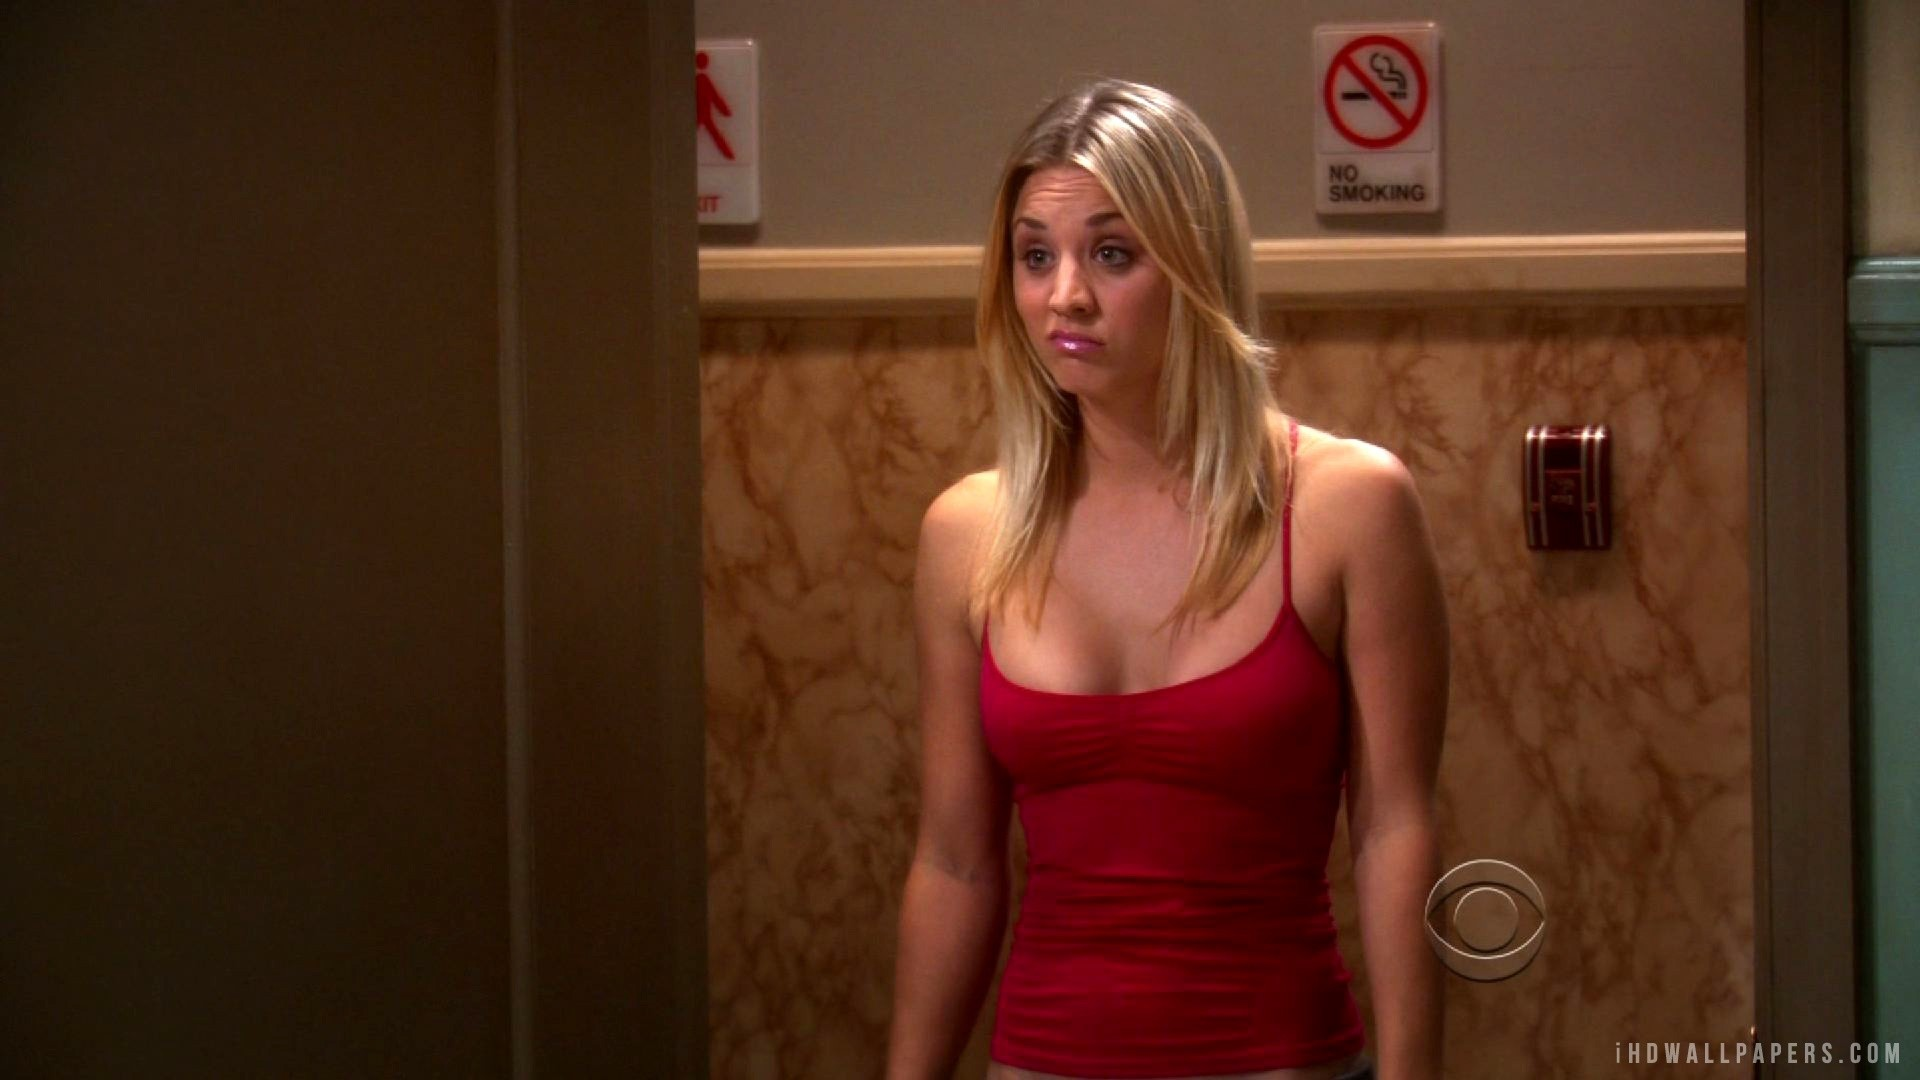 Kaley Cuoco The Big Bang Theory Wallpaper/Background in .